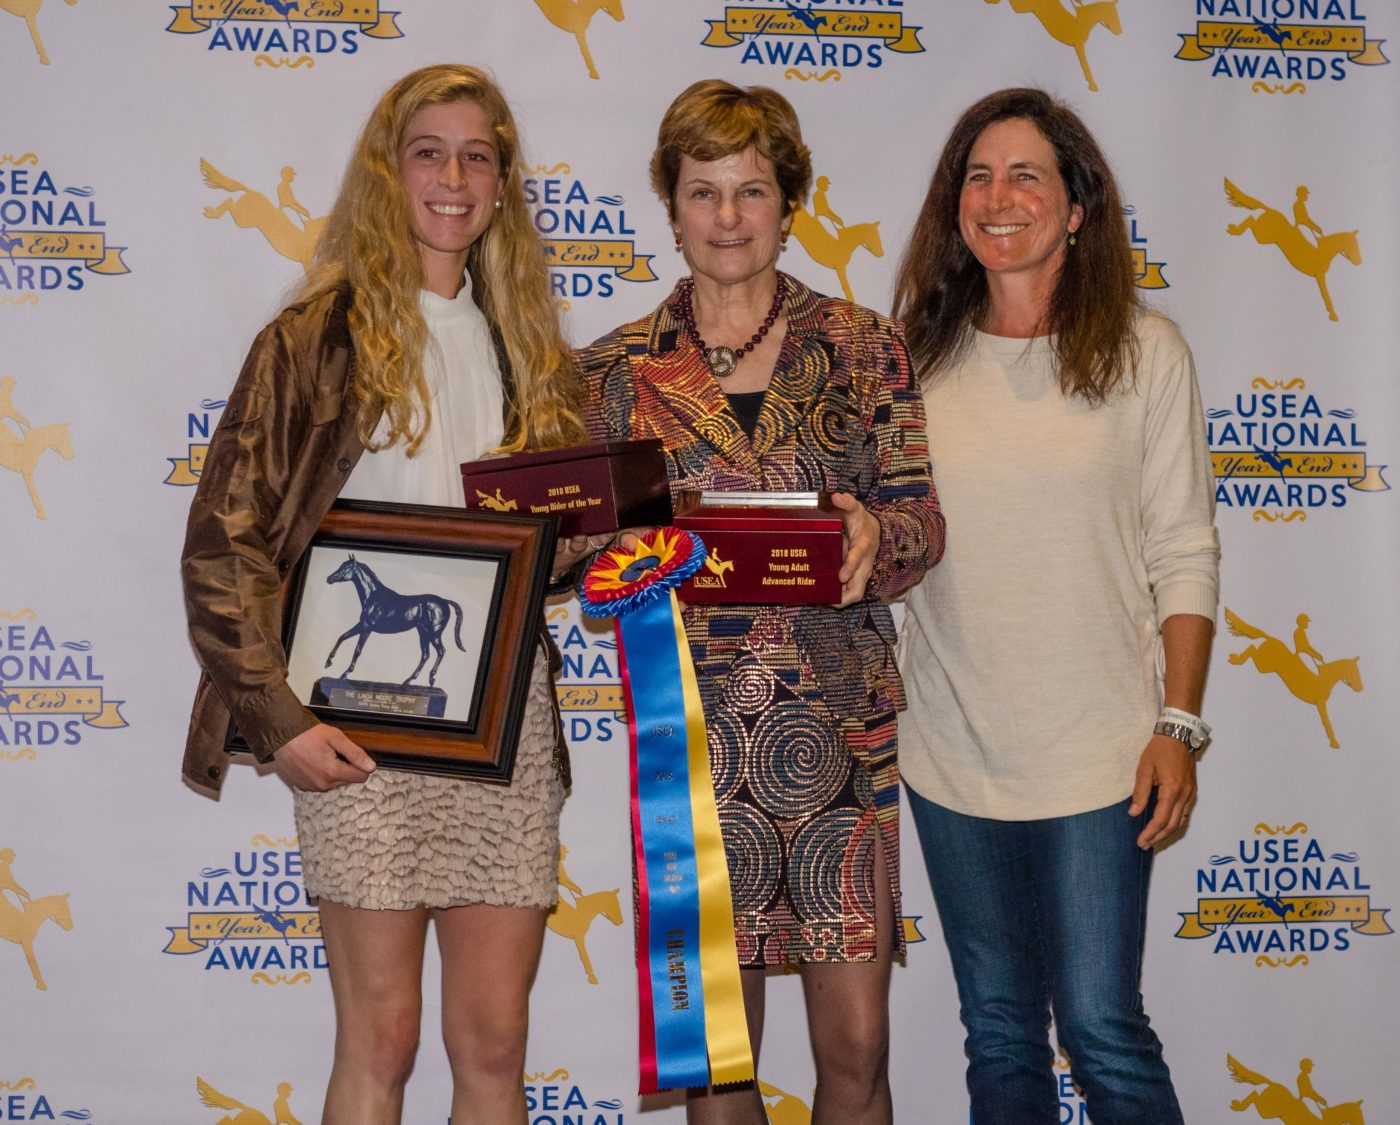 2018 RevitaVet USEA Young Rider of the Year Cornelia Dorr.